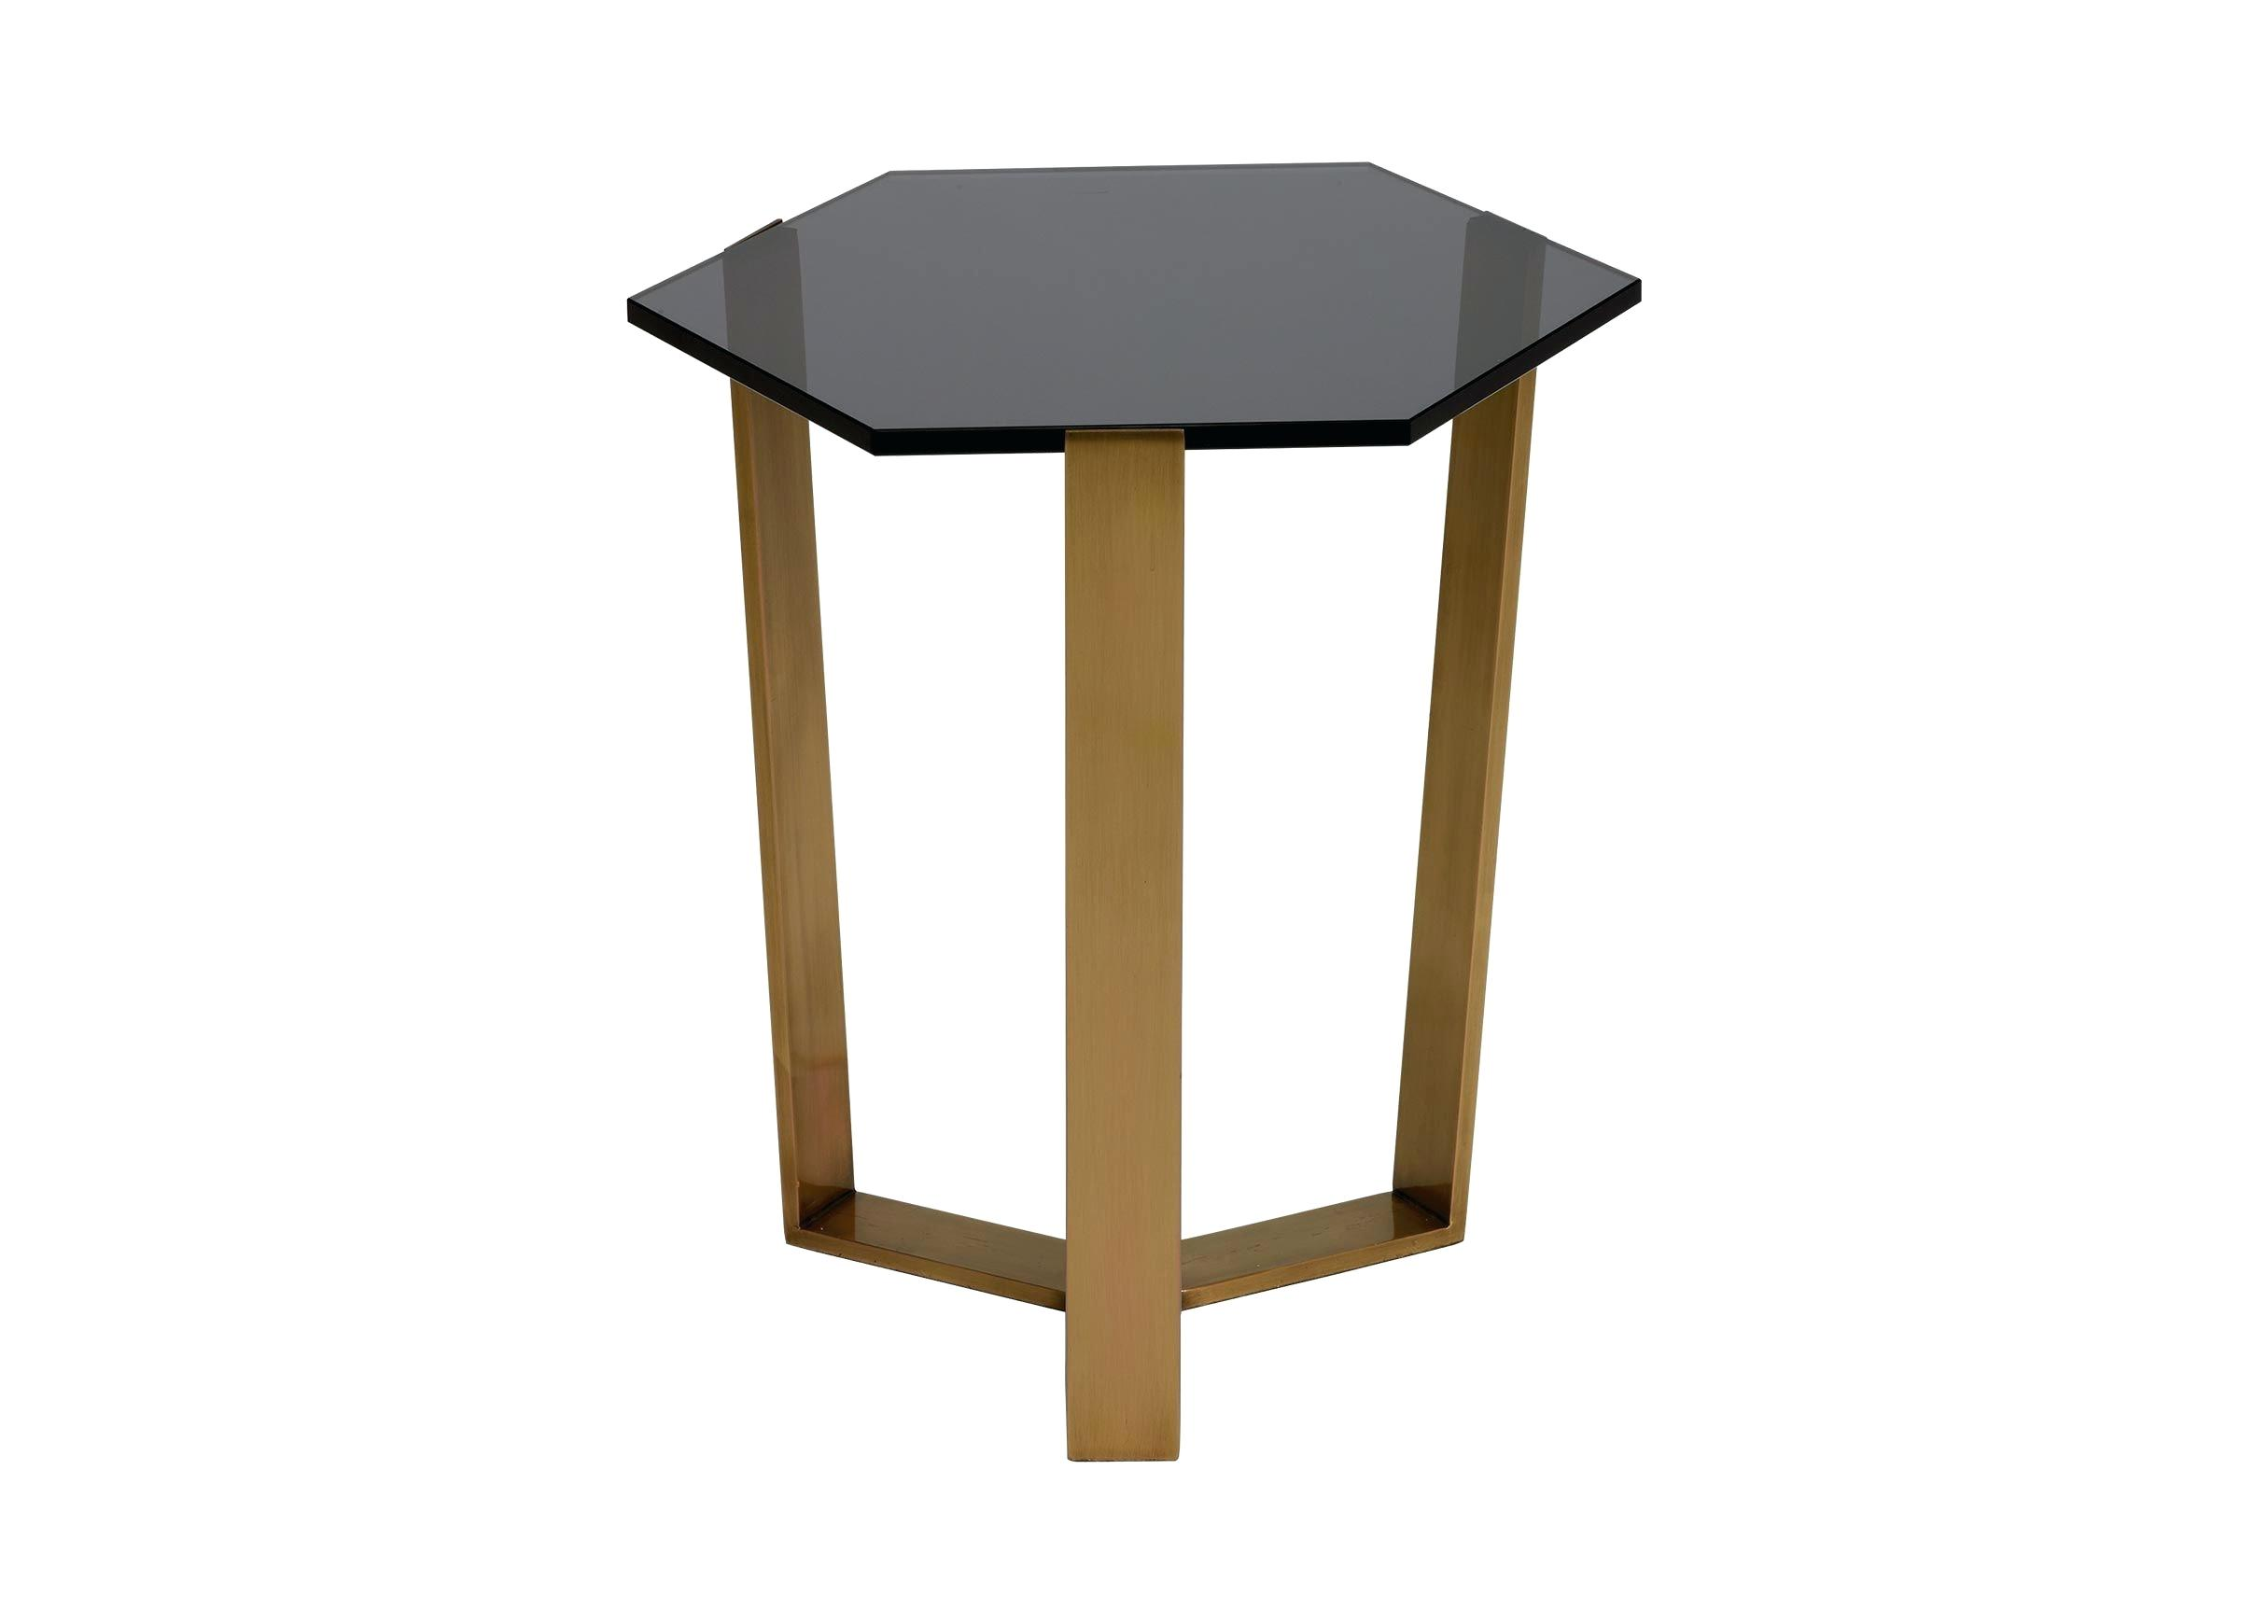 glass accent table black gold smoke iron avery top ikea garden shed storage cabinets with doors woven outdoor furniture bags large square rustic coffee tablecloth for inch round